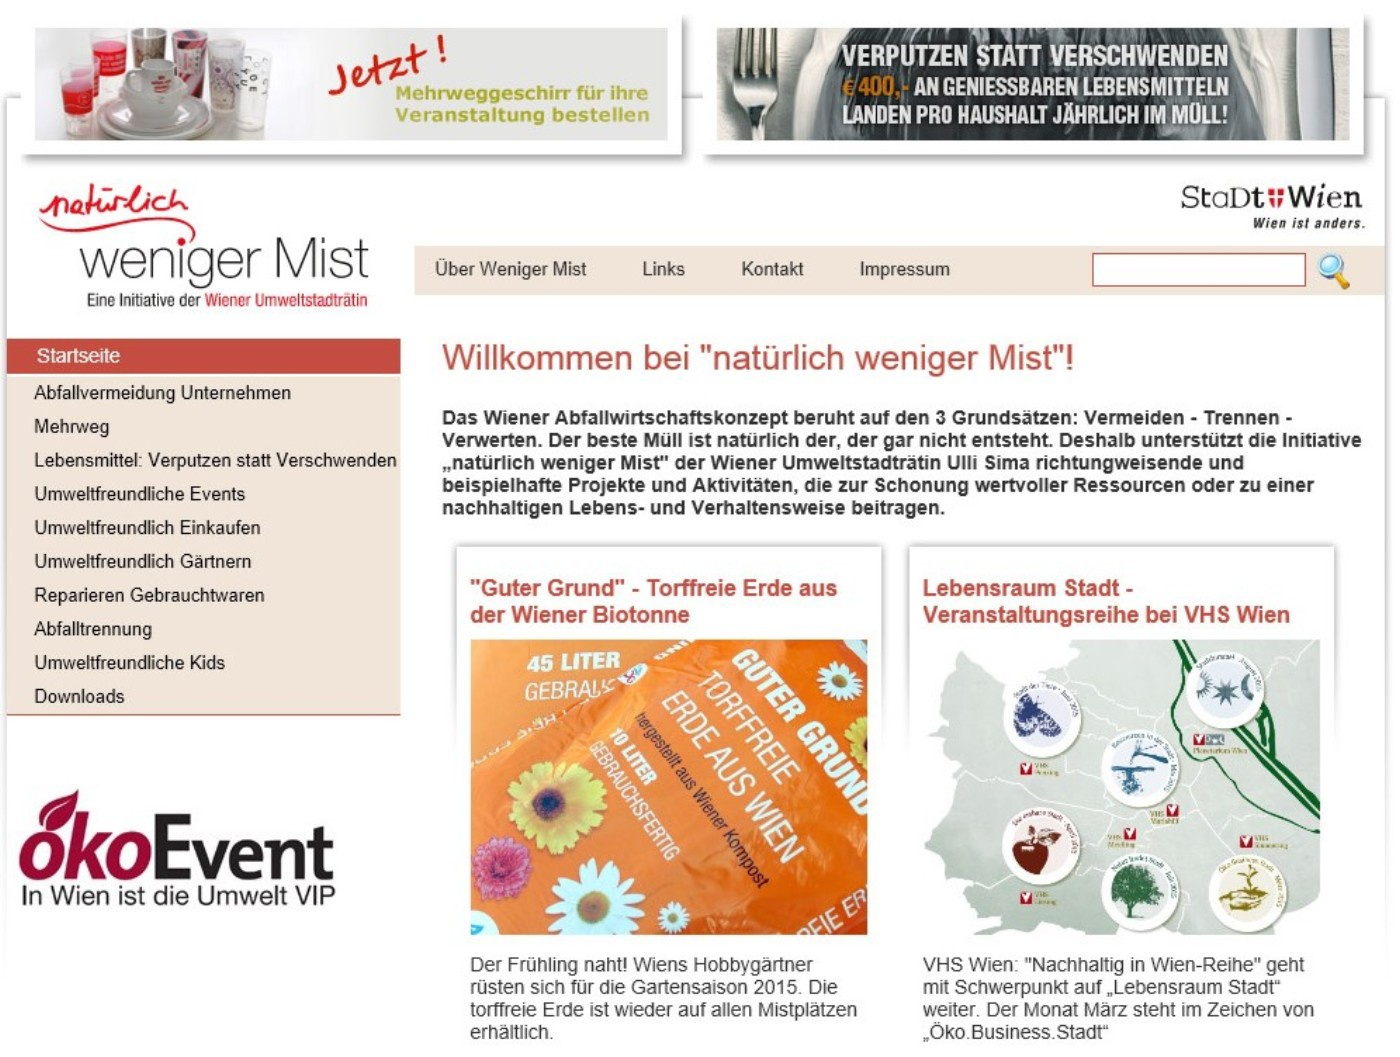 Sceenshot der Website www.wenigermist.at